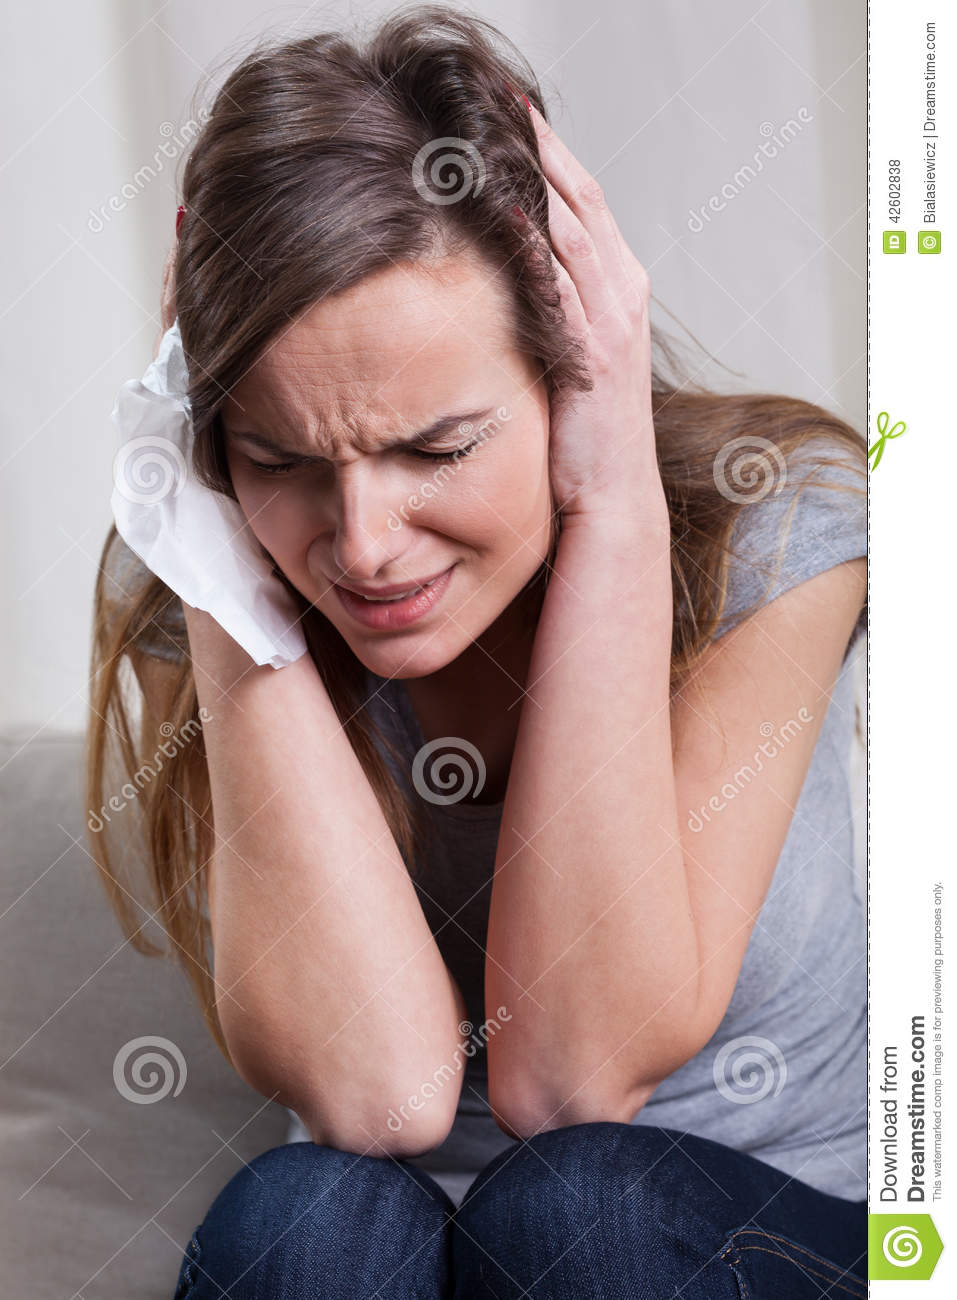 A young woman desperate to keep her jewelry 4